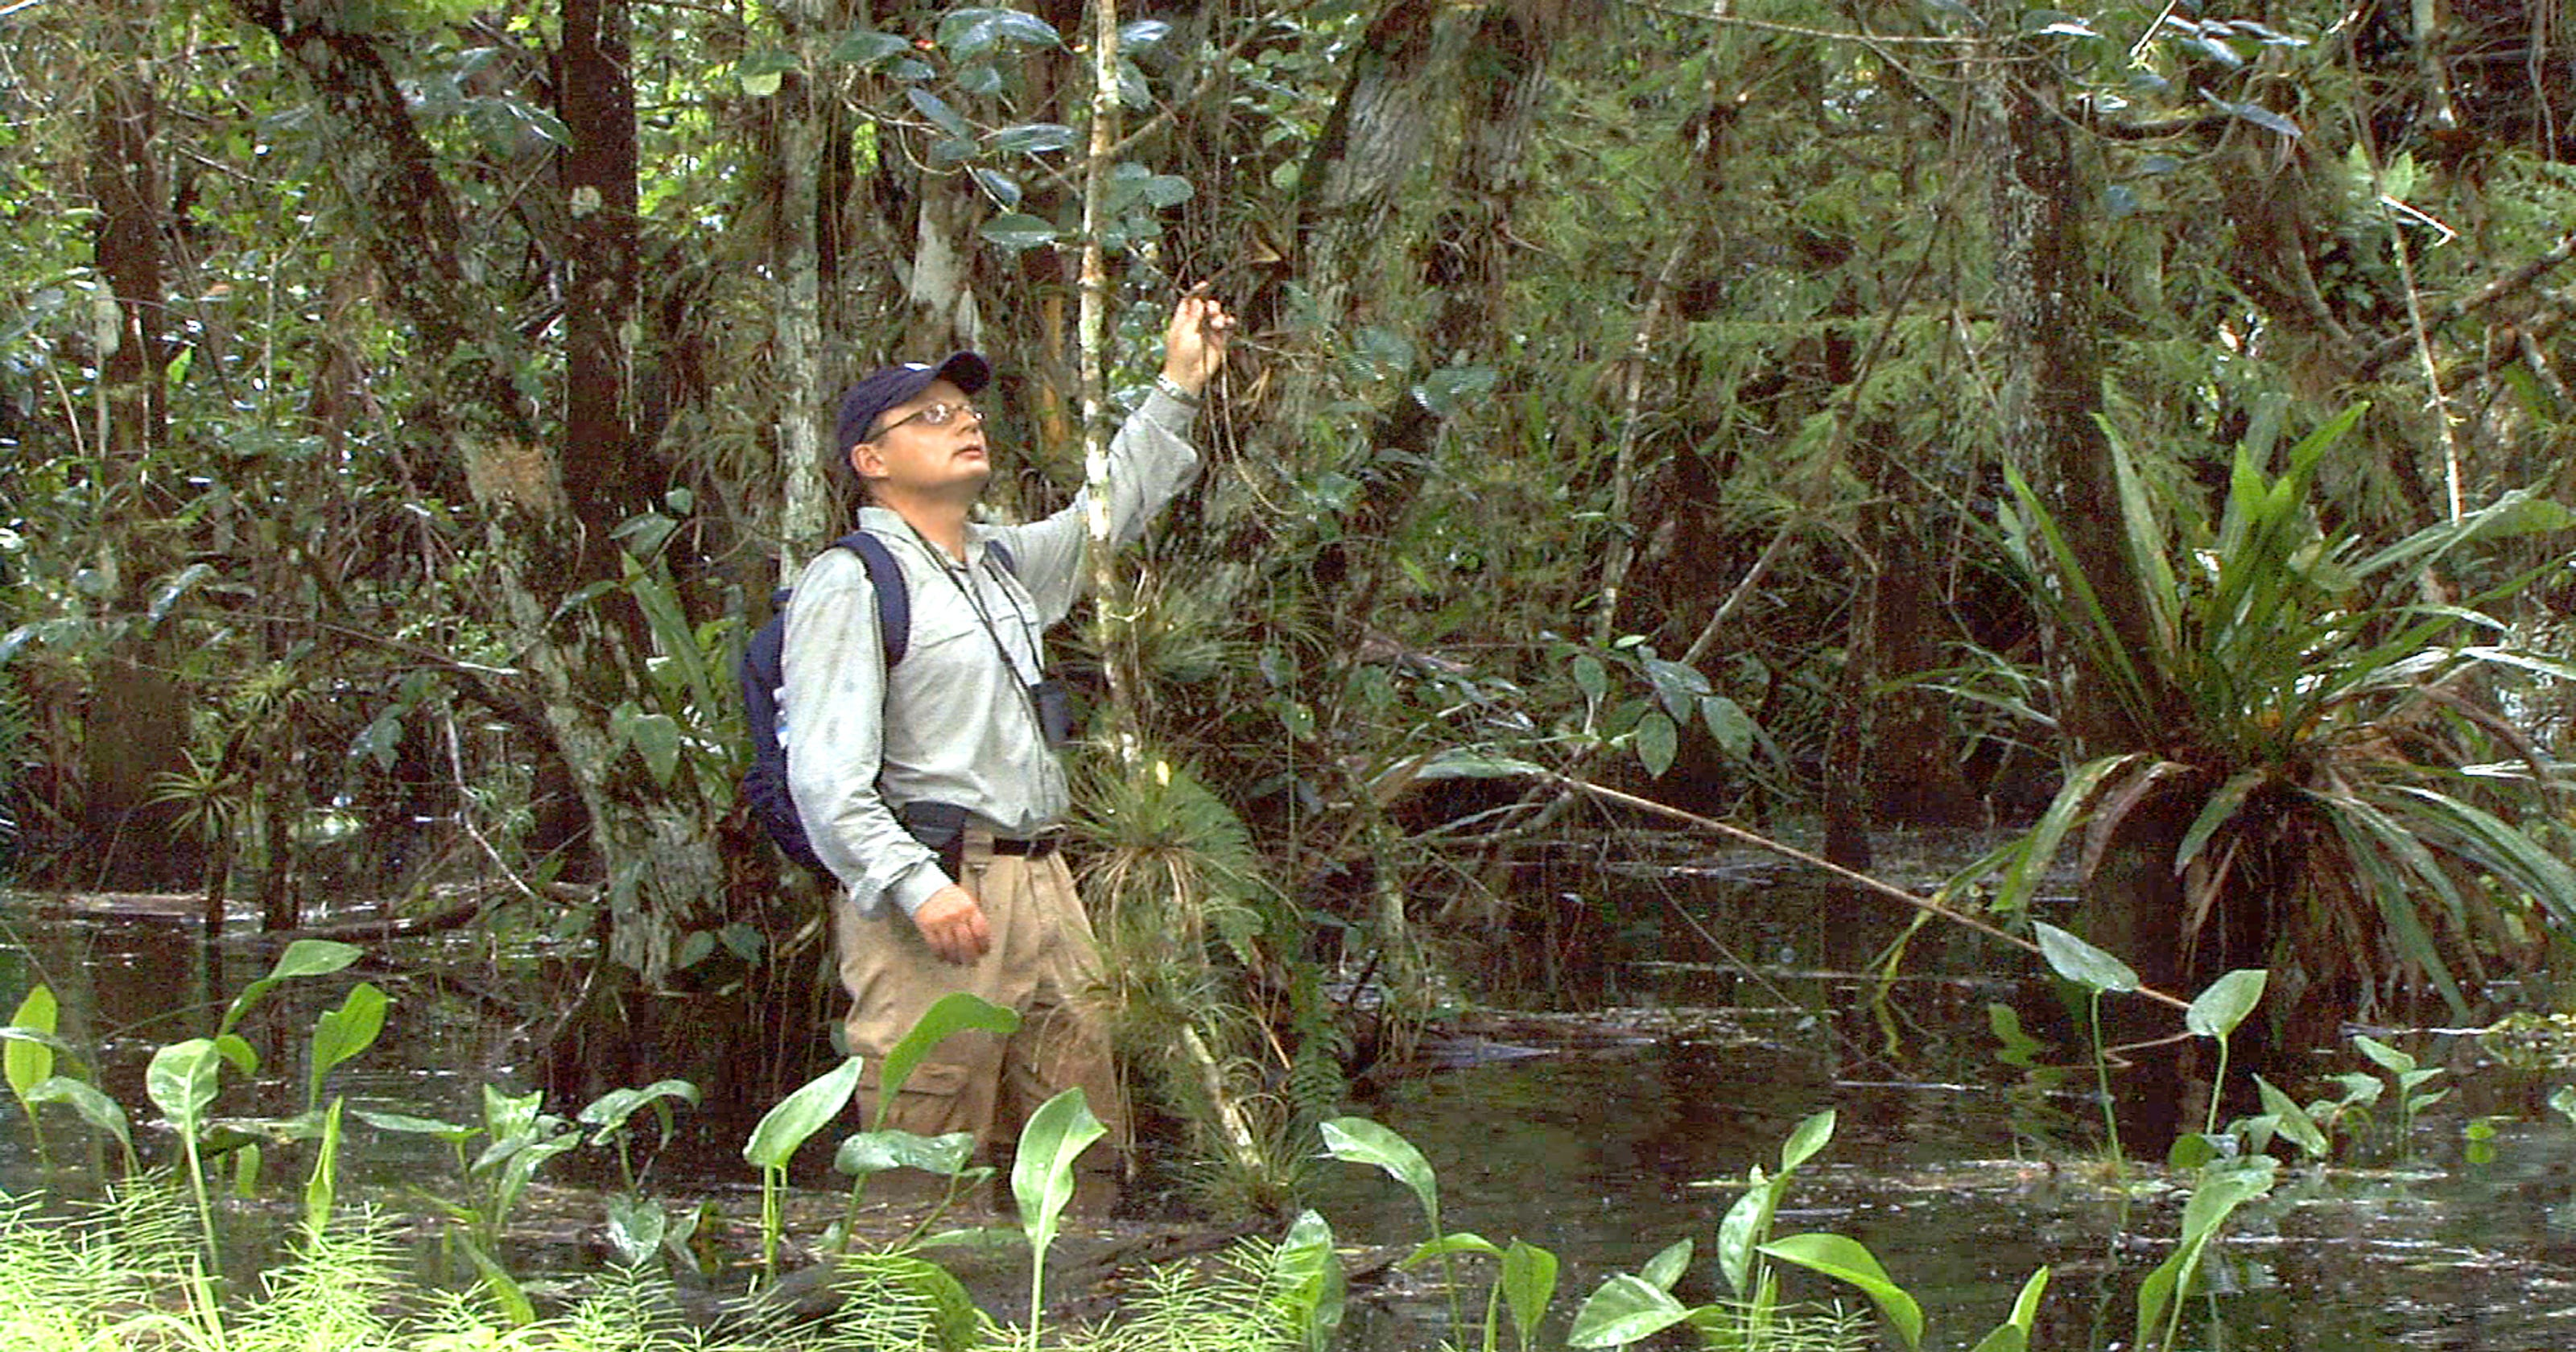 Meet \'Wild Orchid Man\' during documentary screening